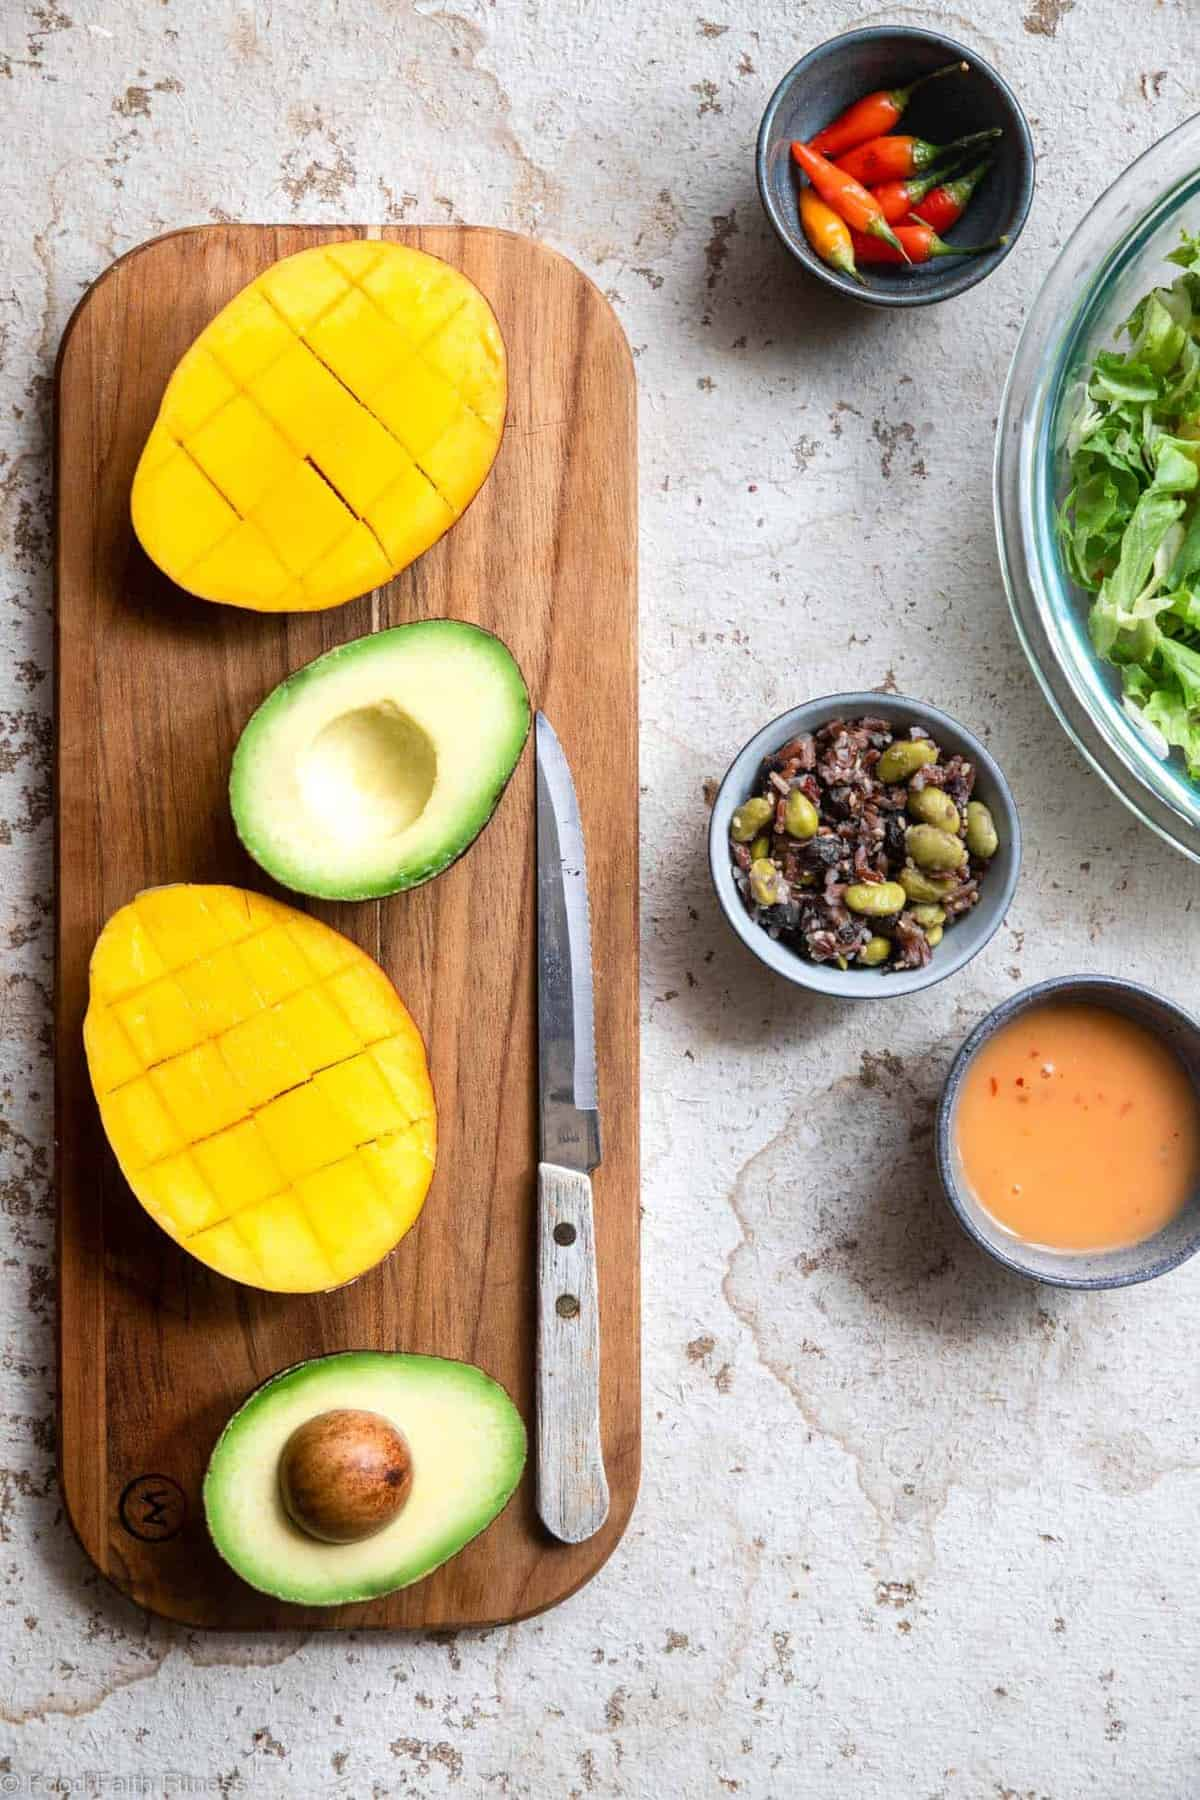 Mangoes and avocado on a cutting board to make Thai beef salad recipe